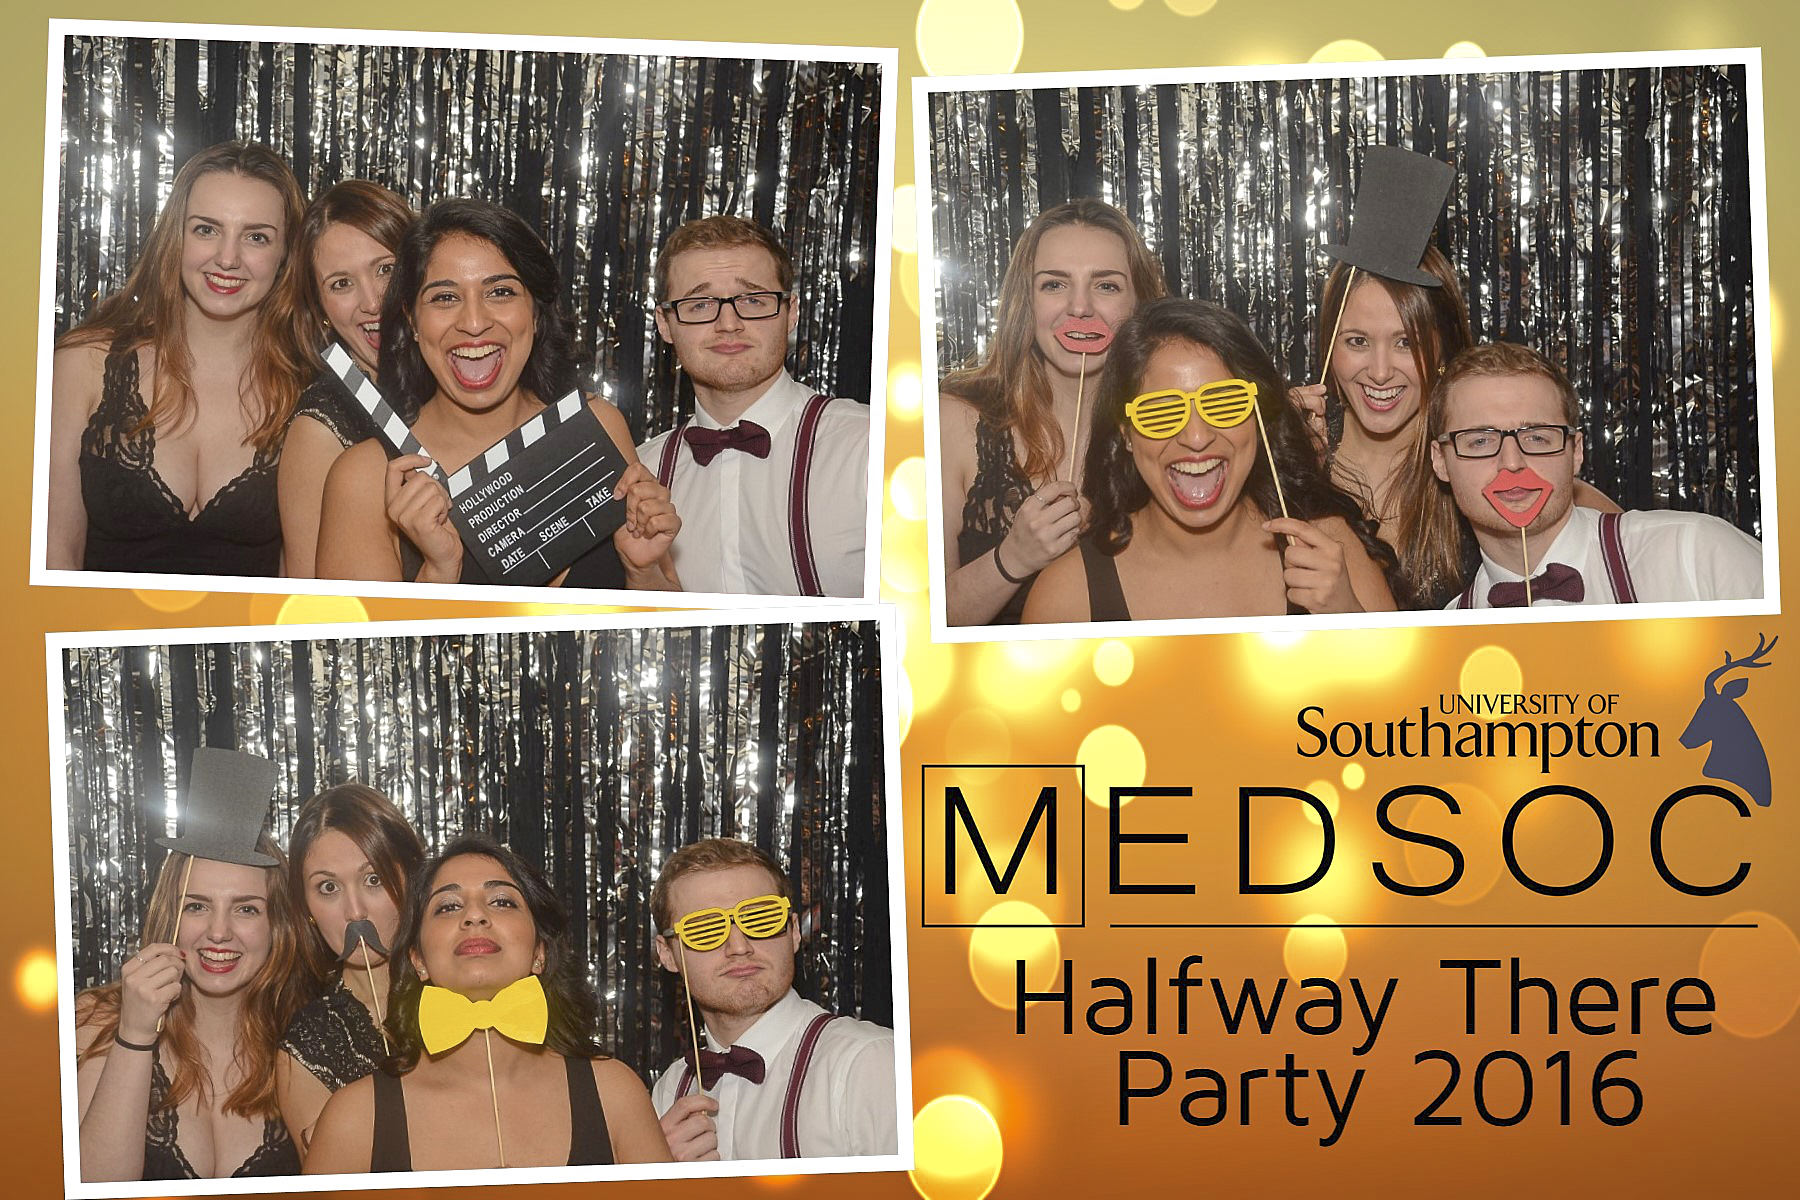 MedSoc Halfway There Party 2016 DS222651.jpg